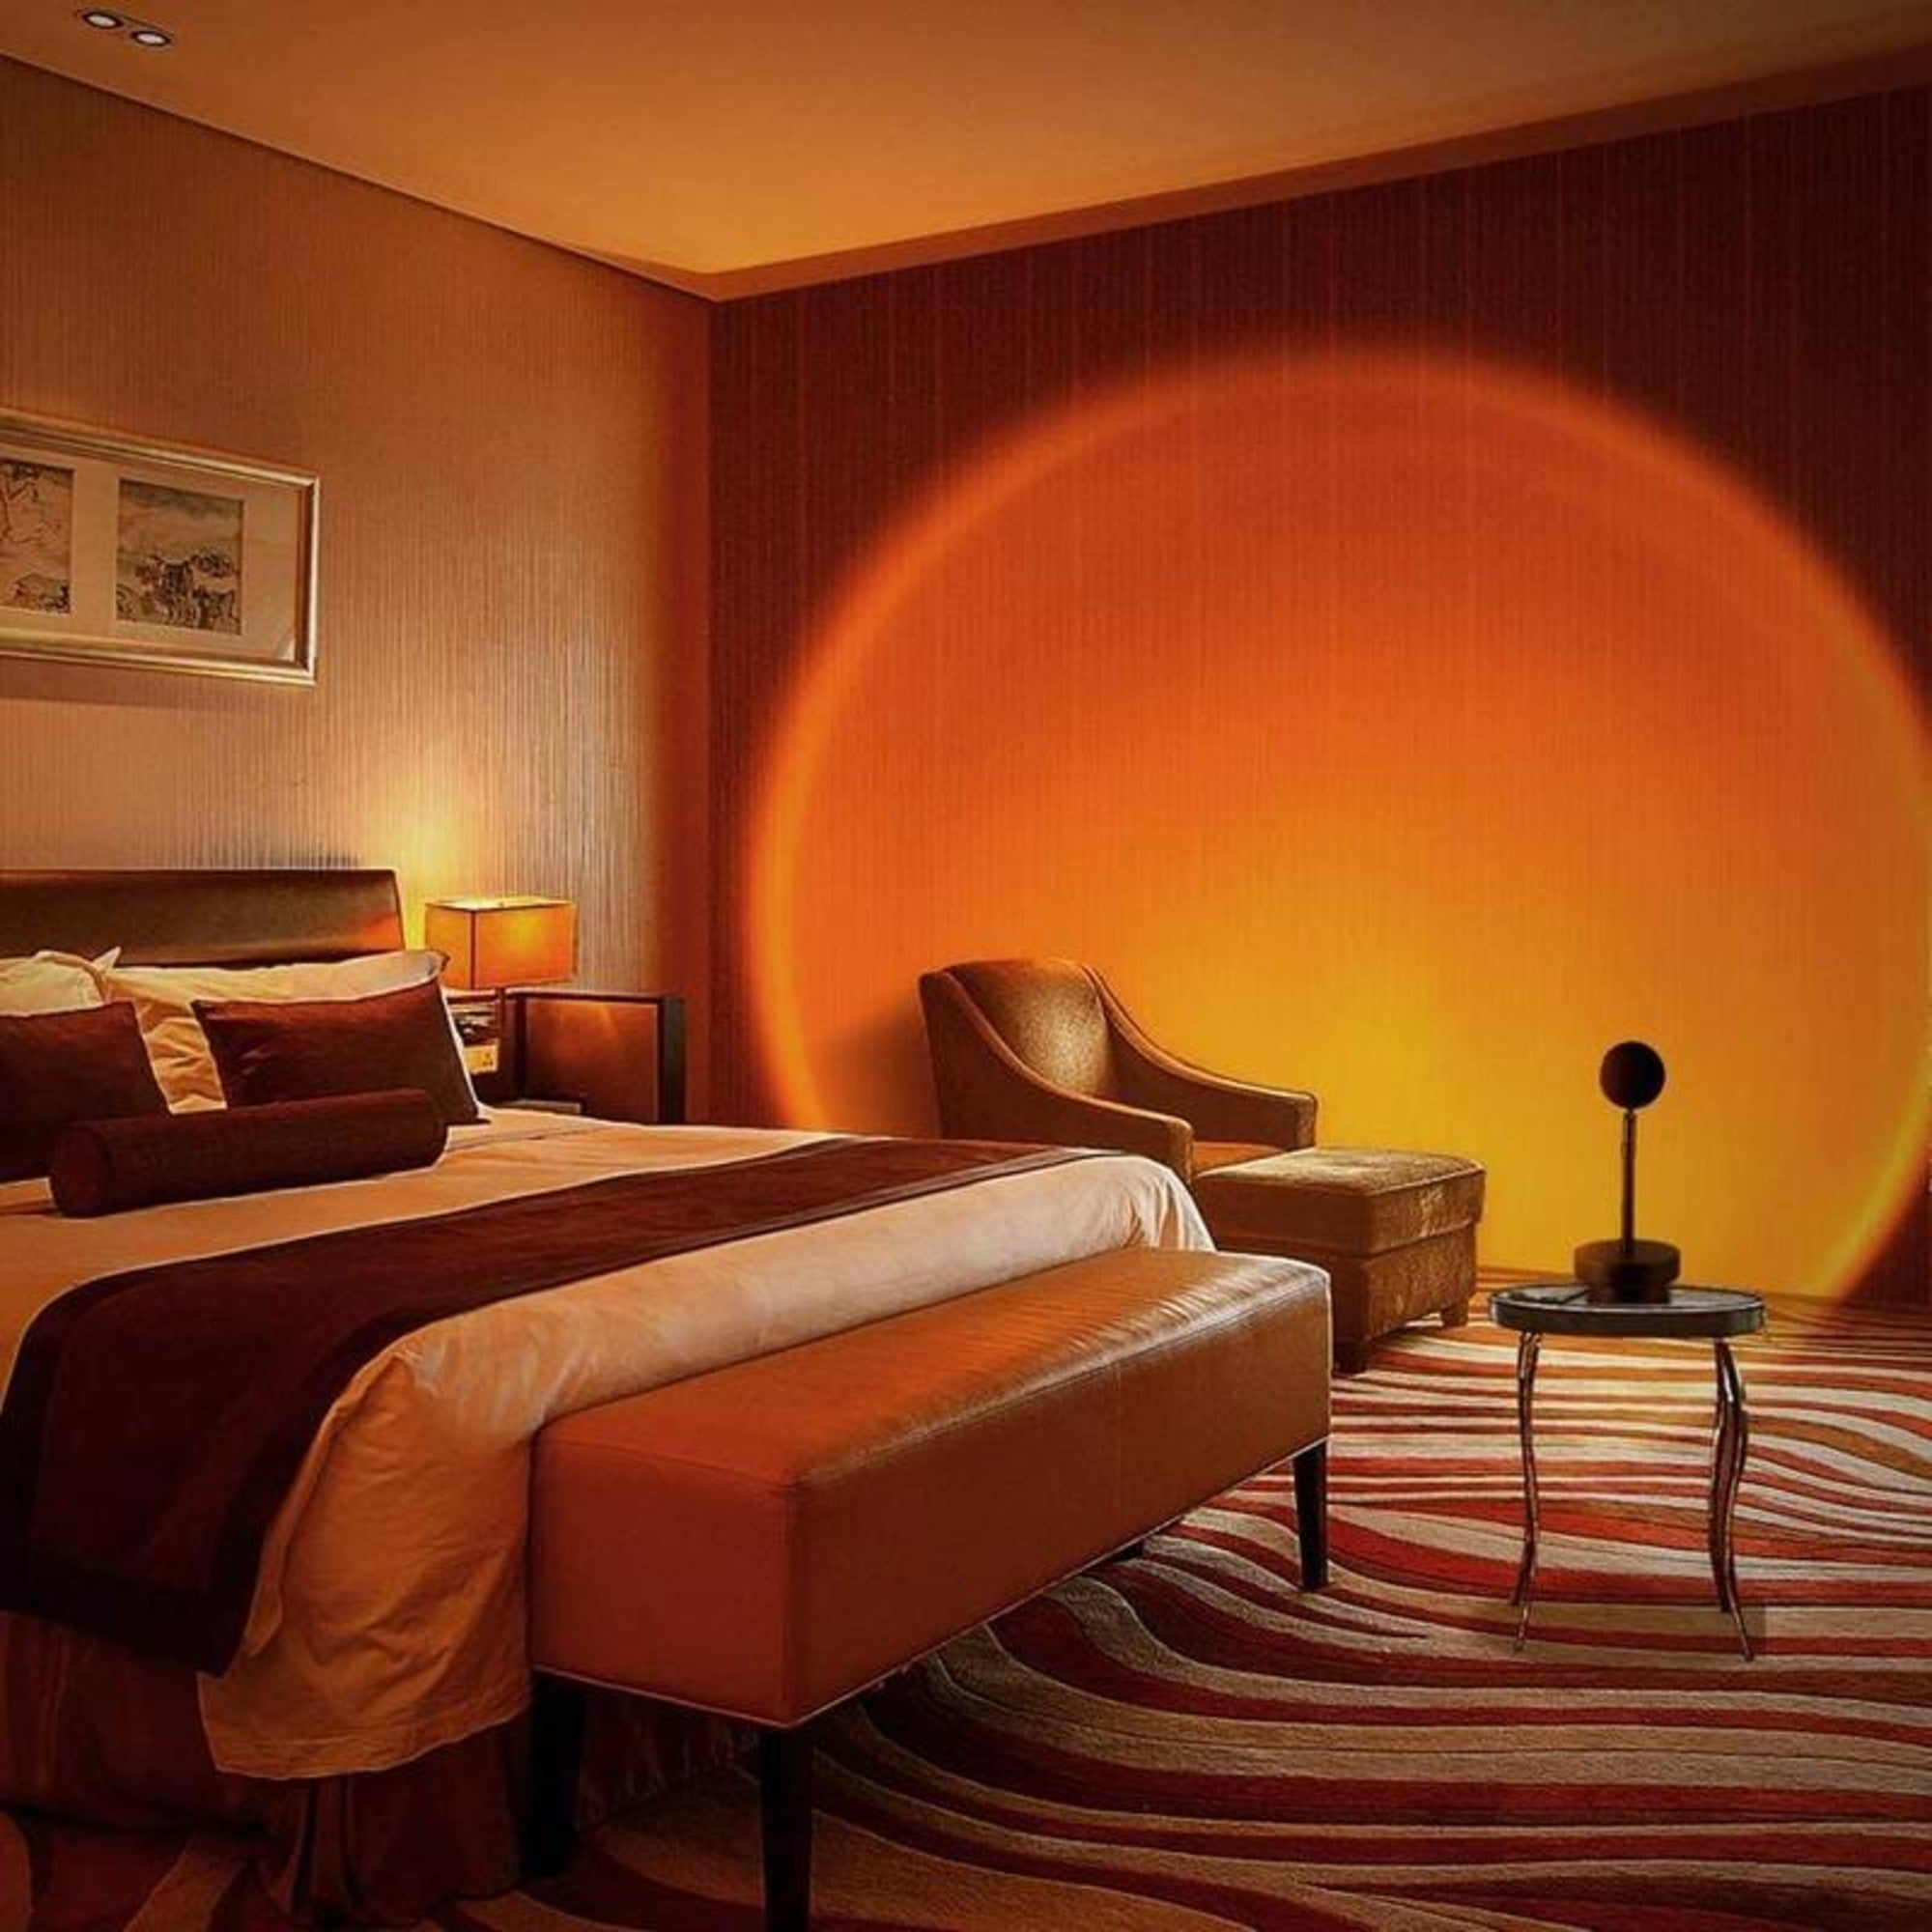 where to buy sunset projection lamps 2021